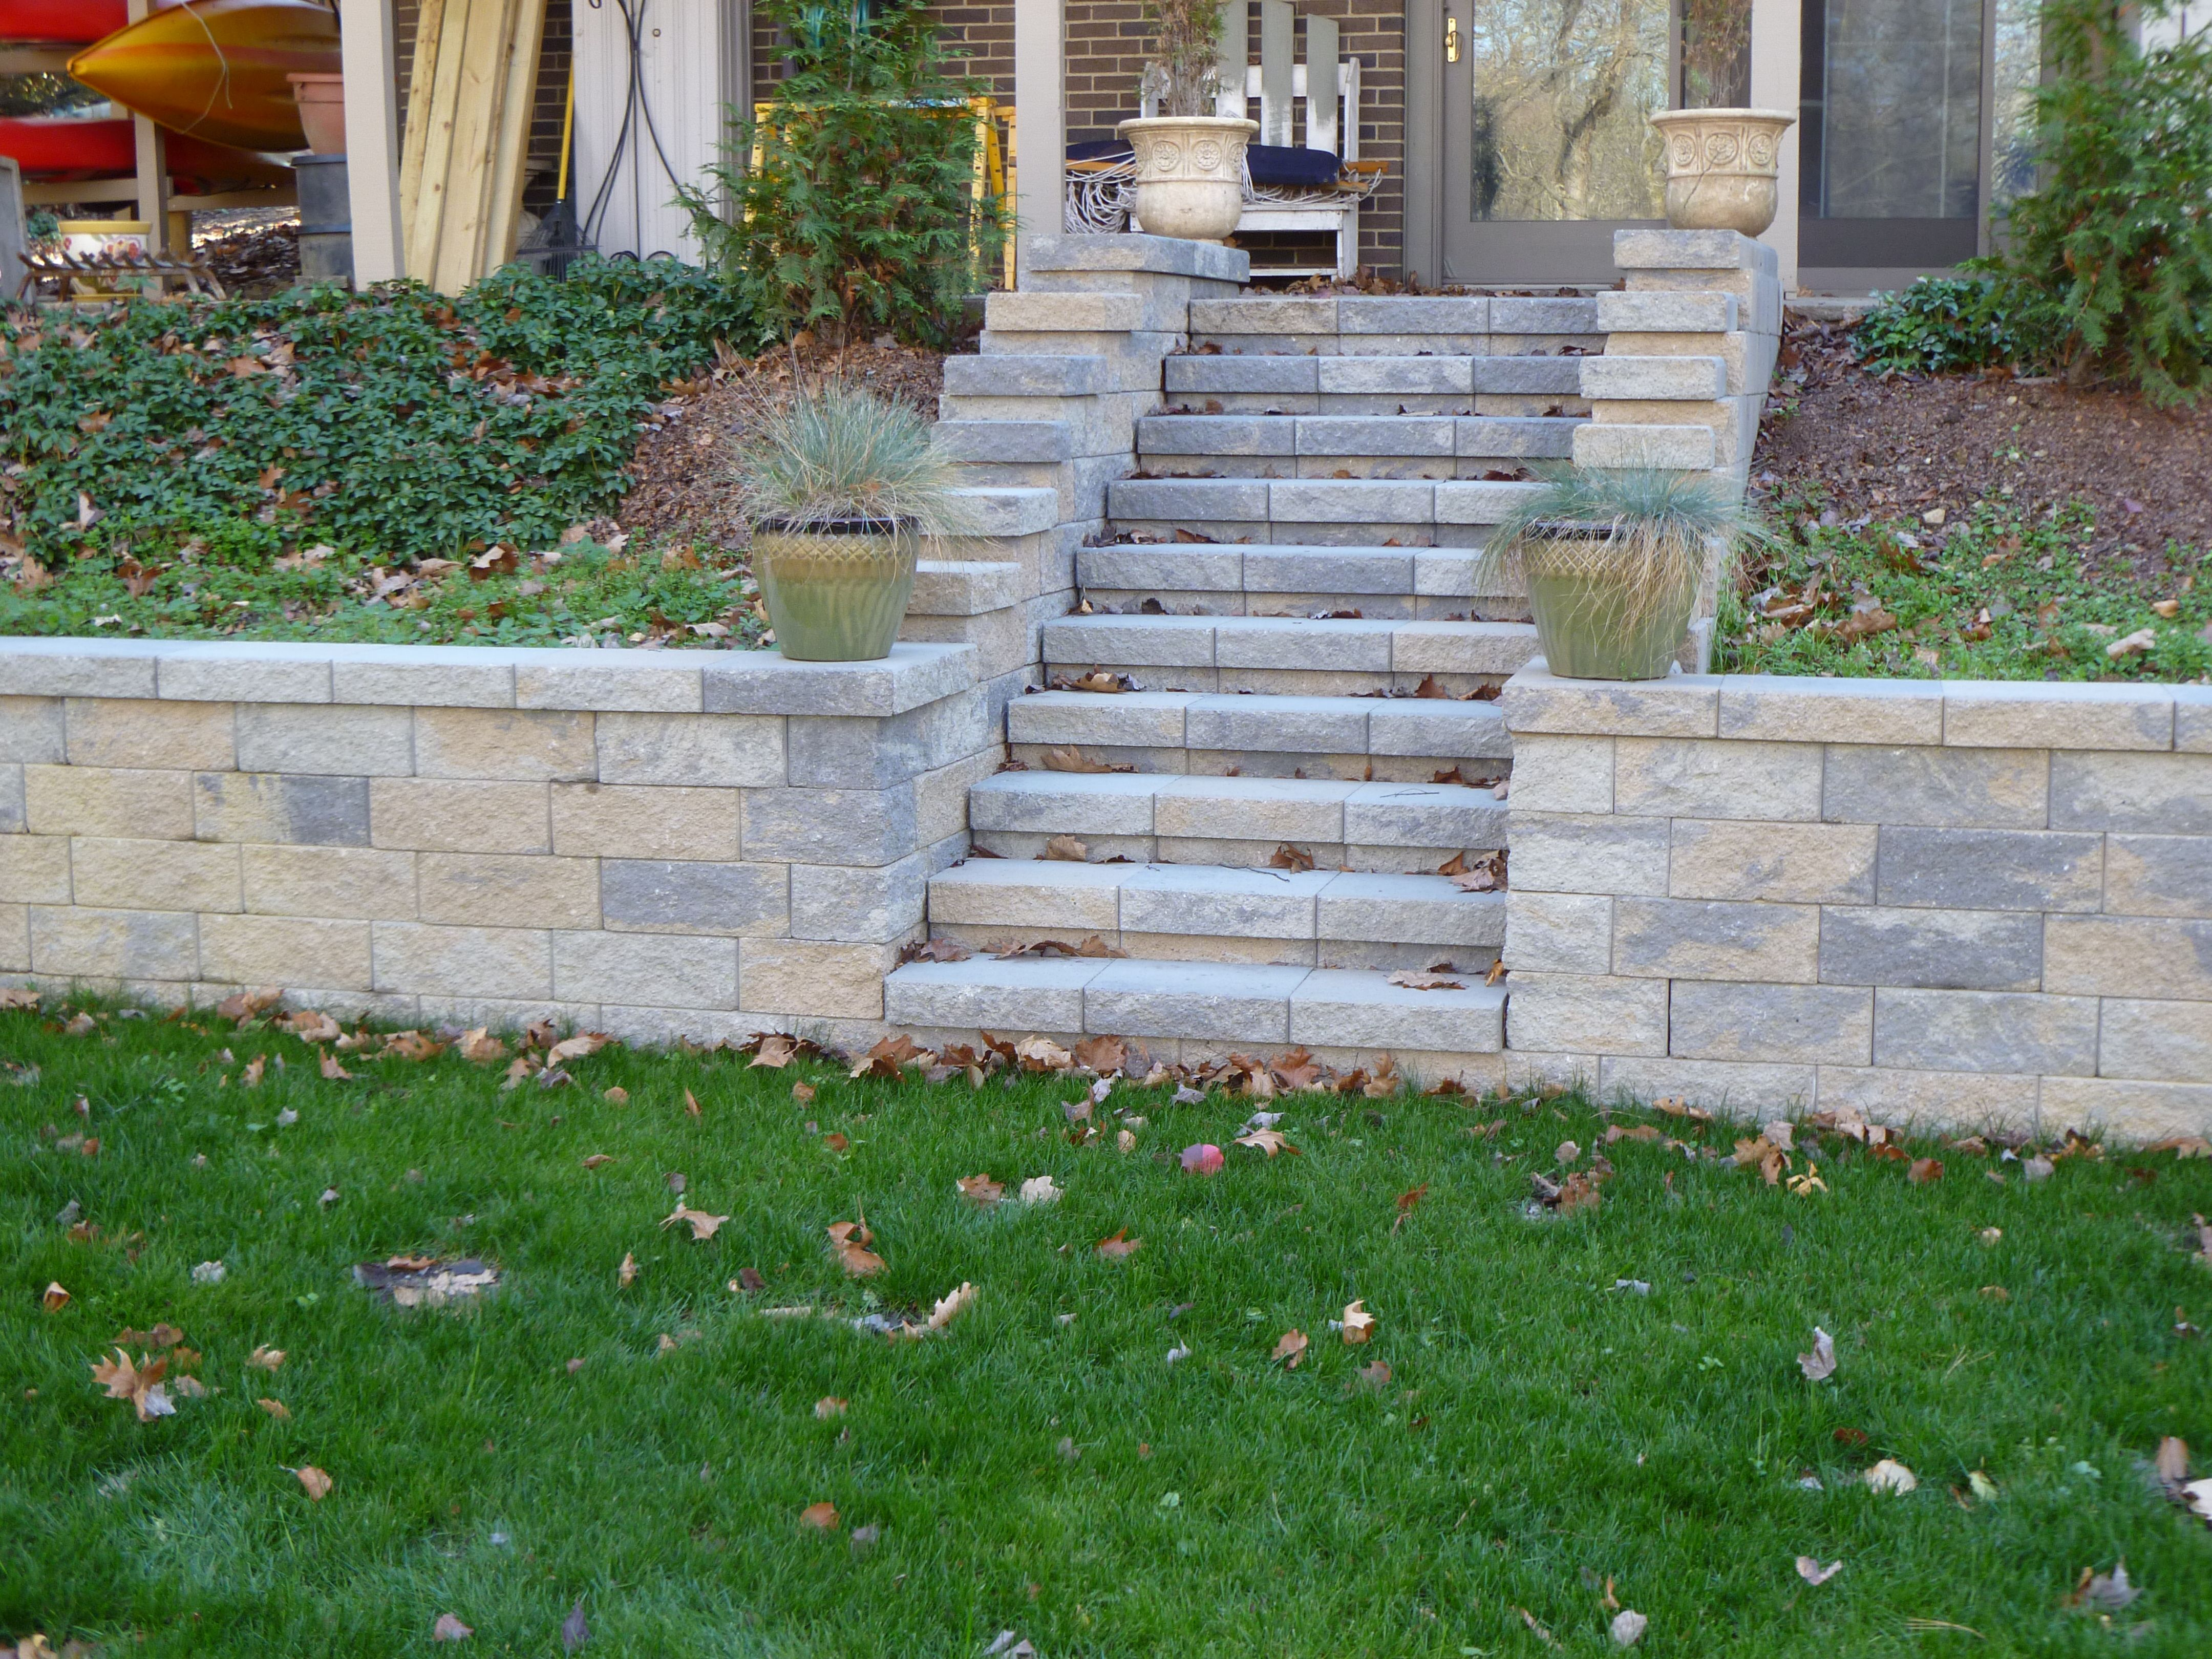 Versa Lok Steps And Retaining Wall Retaining Wall Outdoor Spaces Outdoor